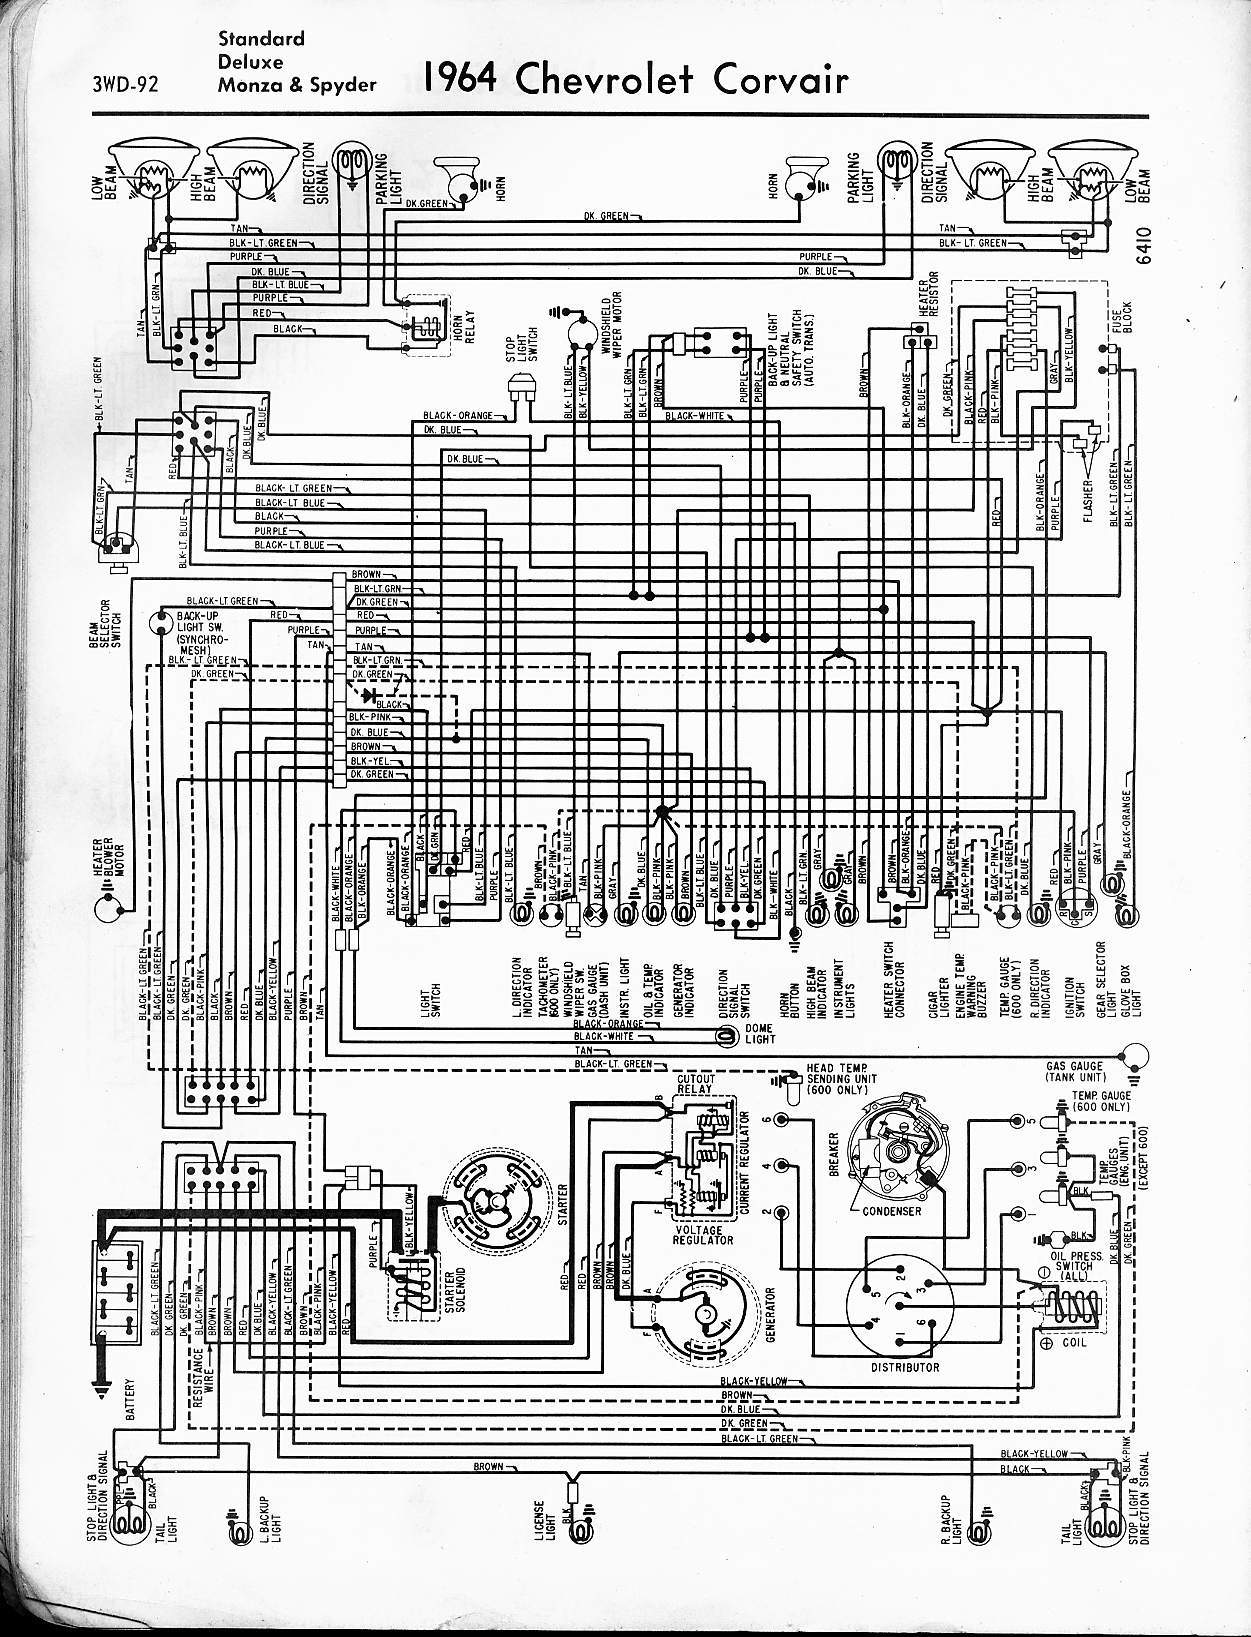 hight resolution of 57 65 chevy wiring diagrams1964 corvair std deluxe monza spyder